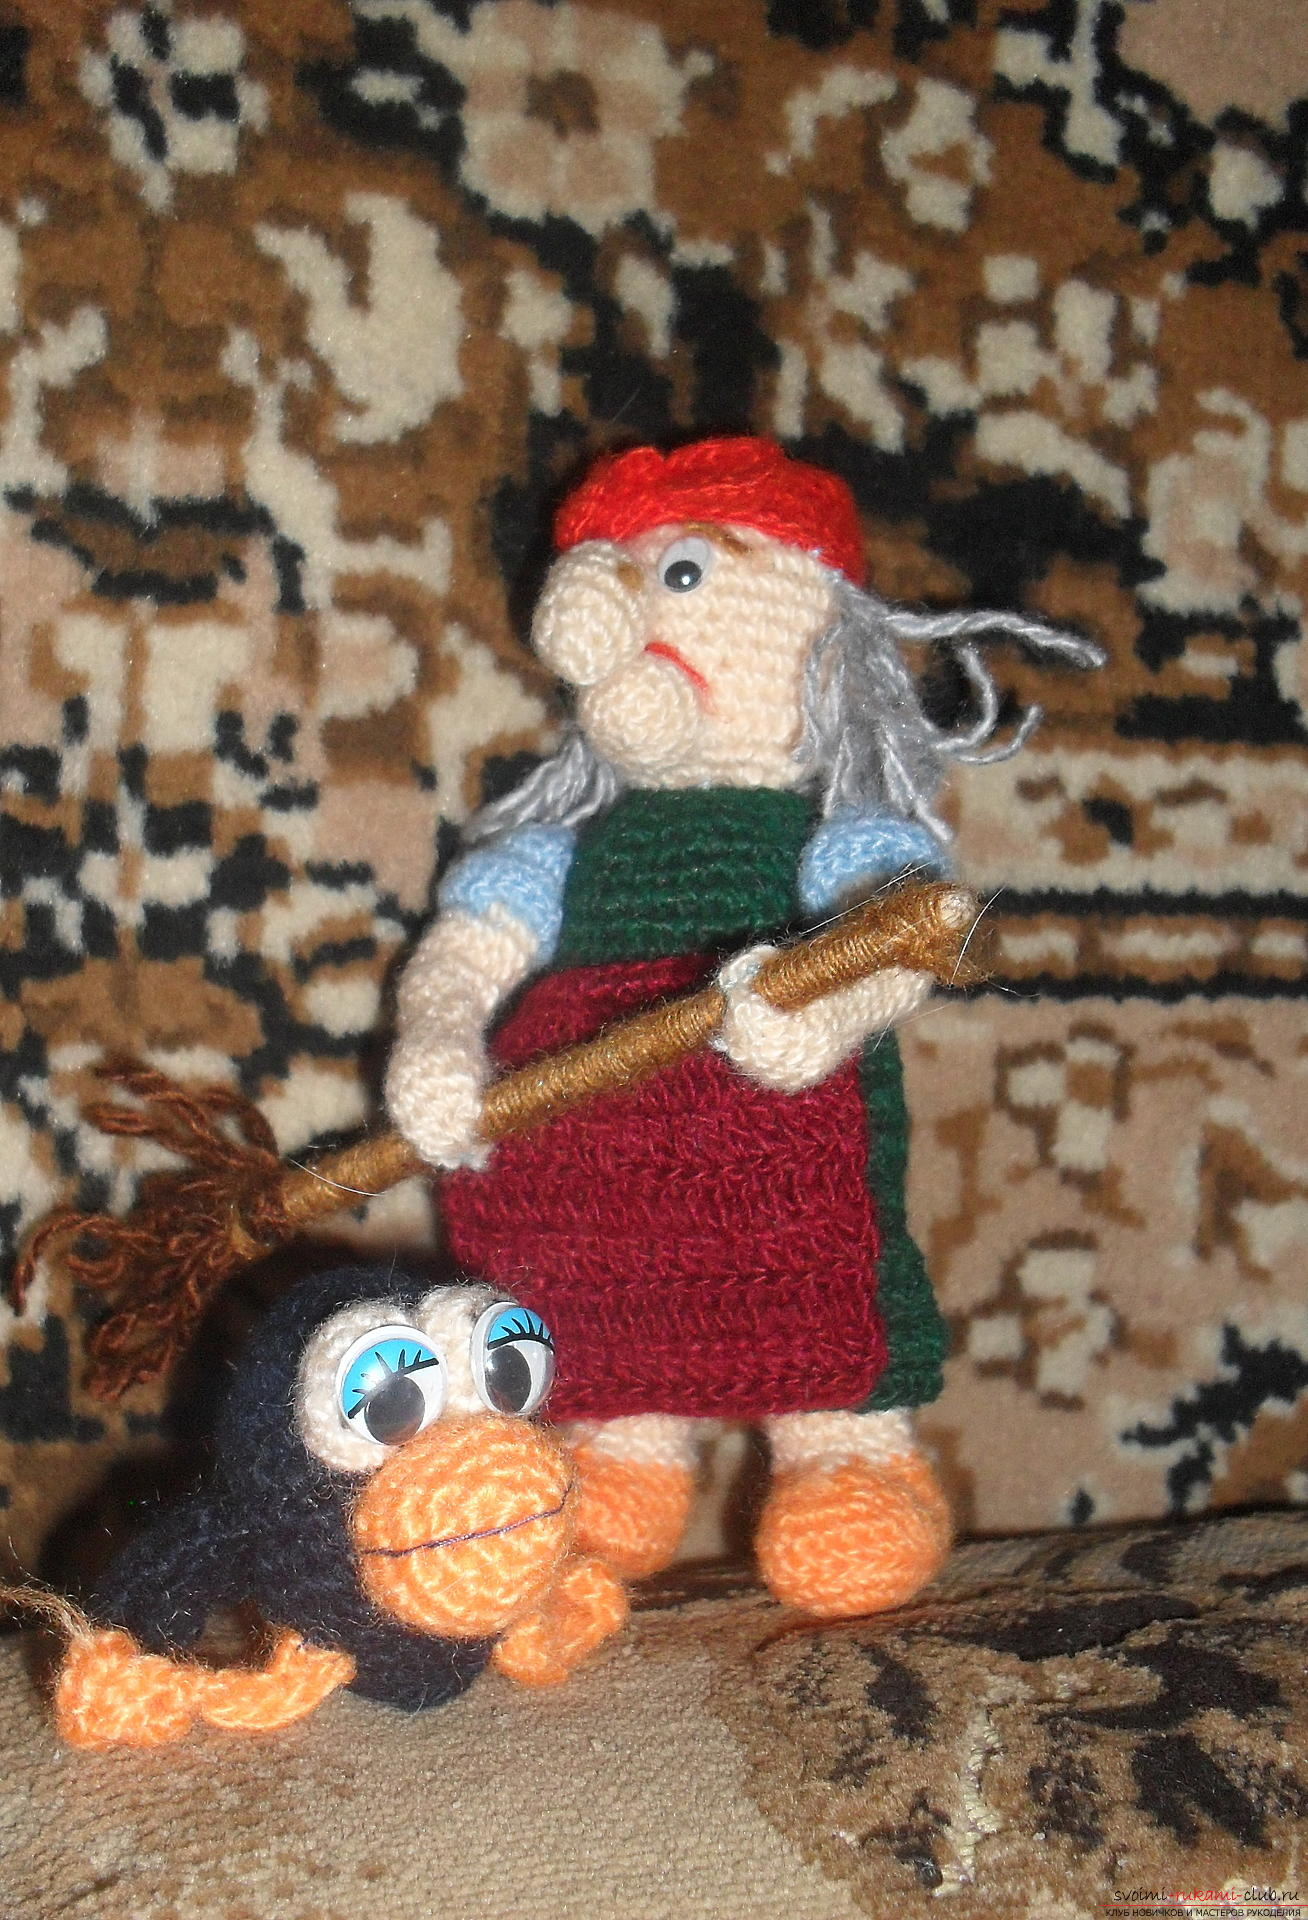 Fairy-tale heroes - the dream of any child, knitted toys in the form of a yaga woman, Banyun's cat will appeal to many children. Crocheted crochet toys are created quickly and in any color .. Photo # 2